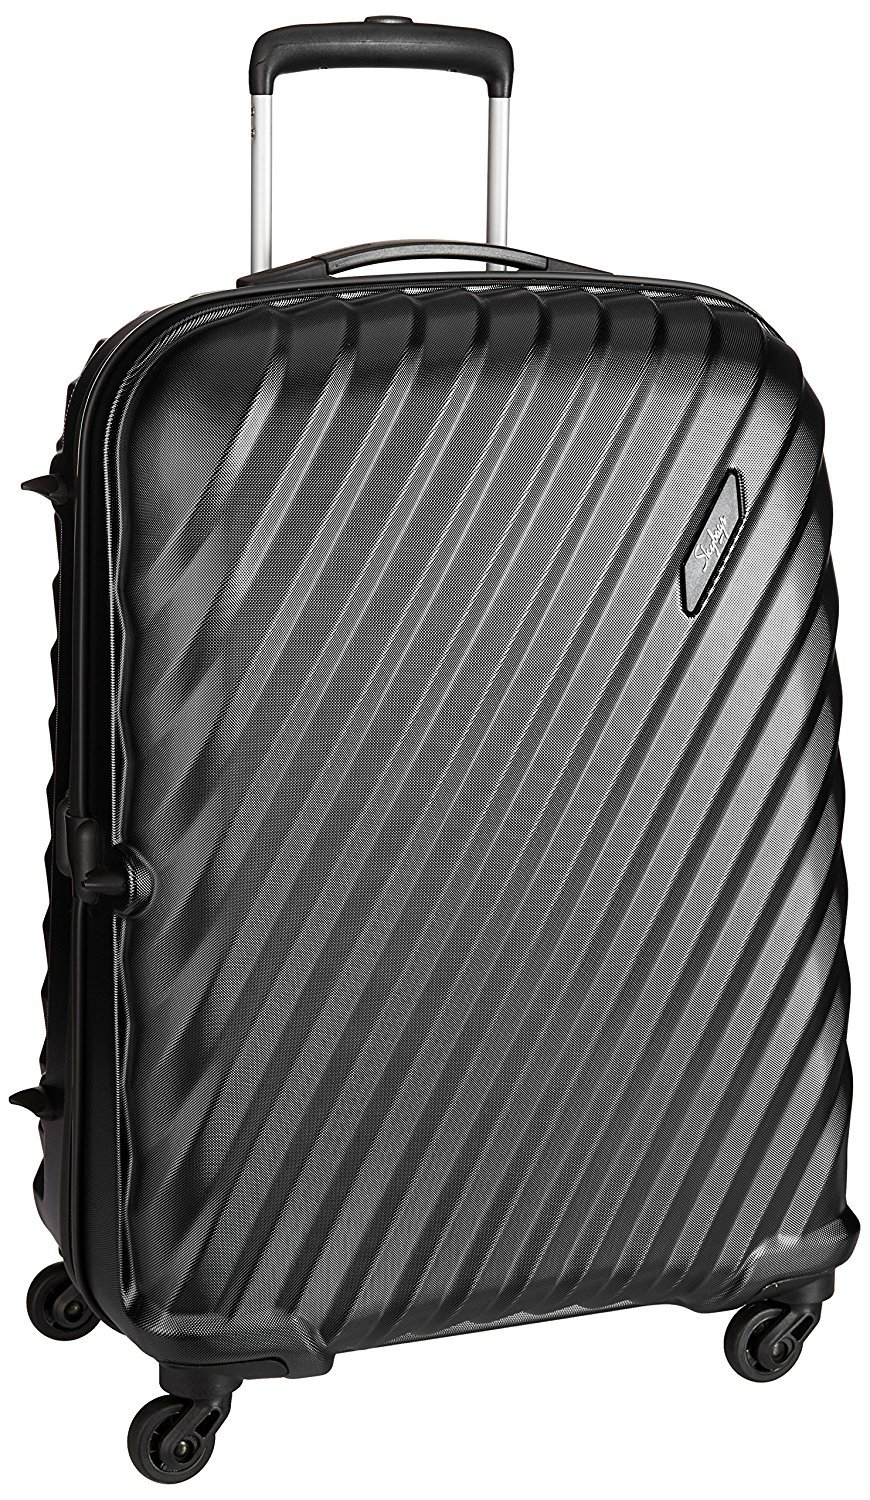 Skybags Westport Polycarbonate 65.5 cms Black Hardsided Suitcase